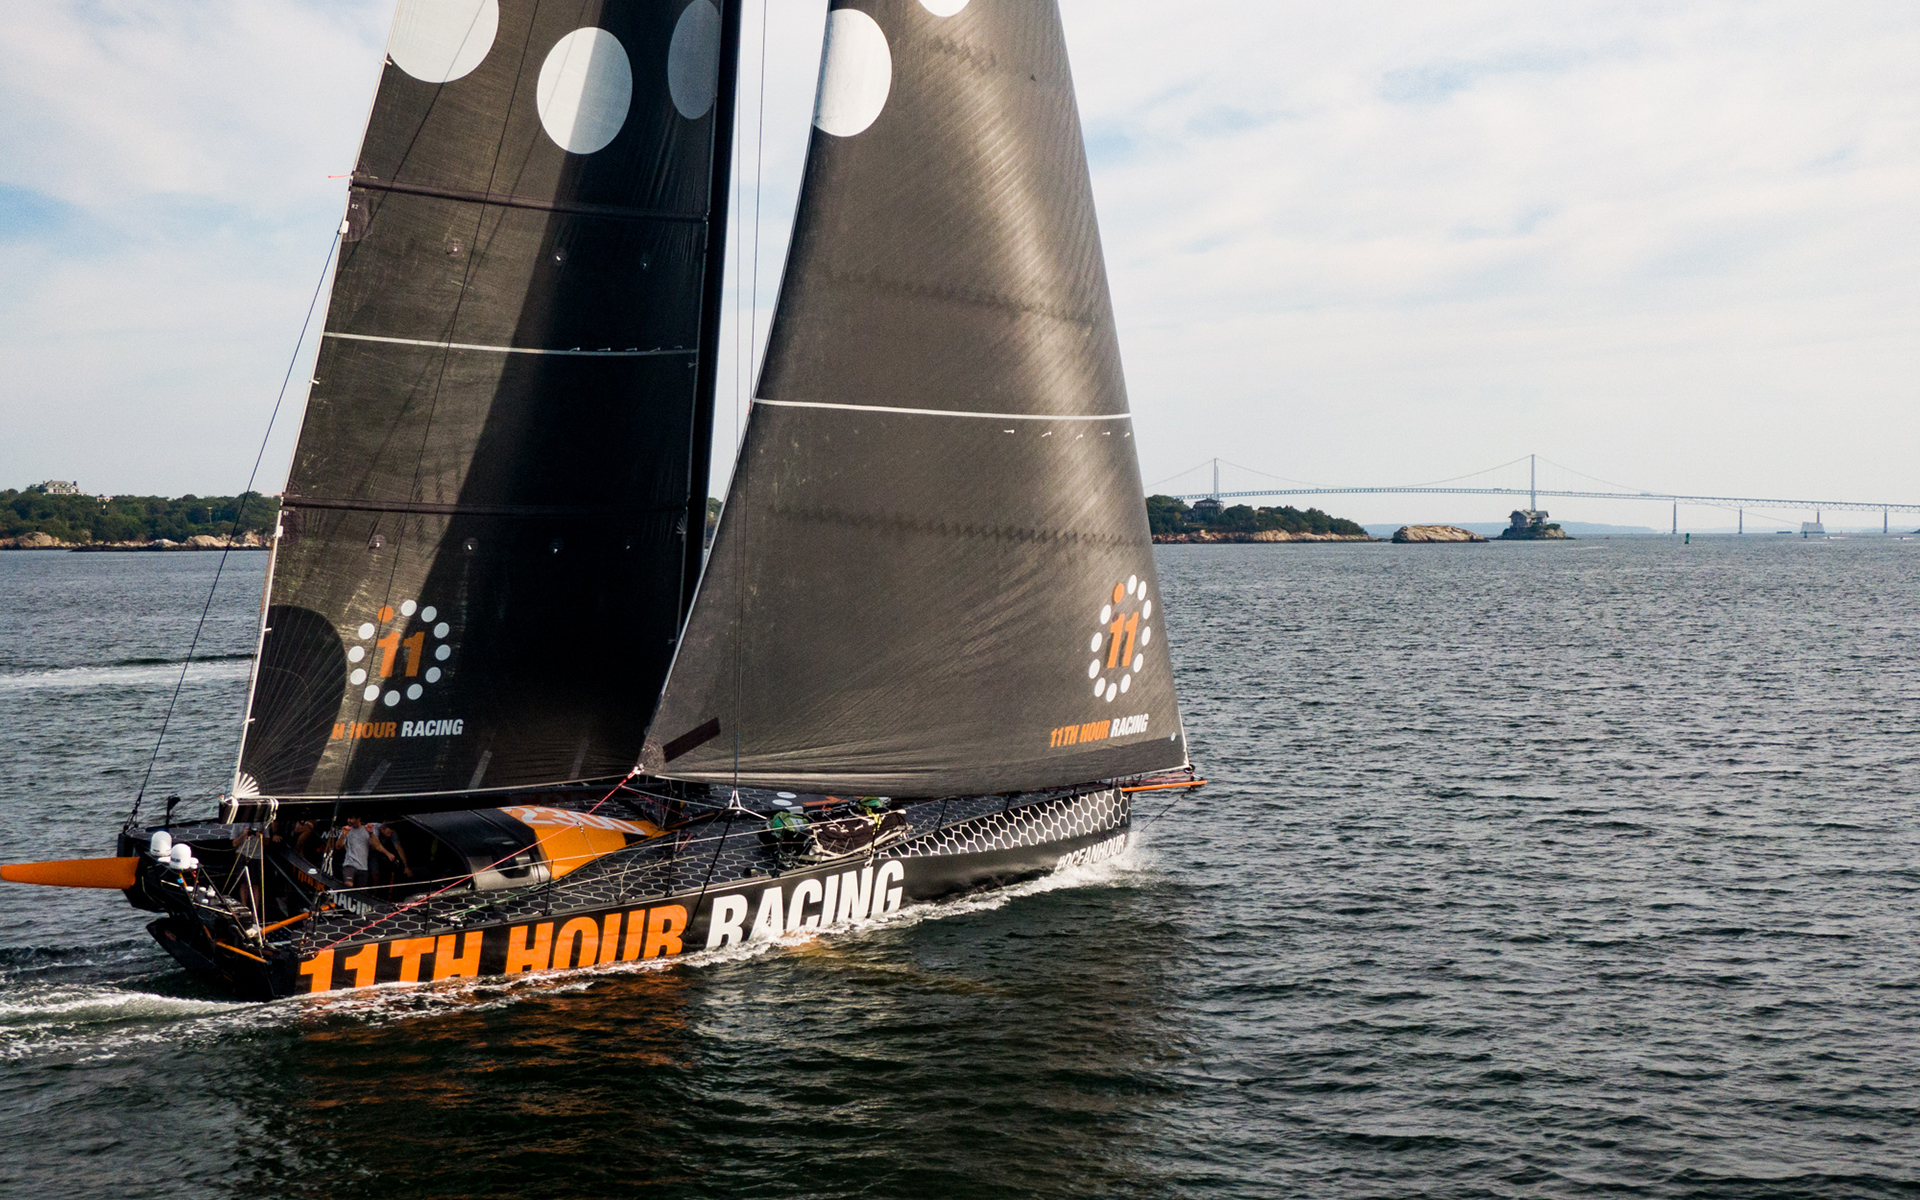 11th Hour Racing Team arrives in Newport, Rhode Island after crossing the Atlantic from France. Credit: Amory Ross | 11th Hour Racing